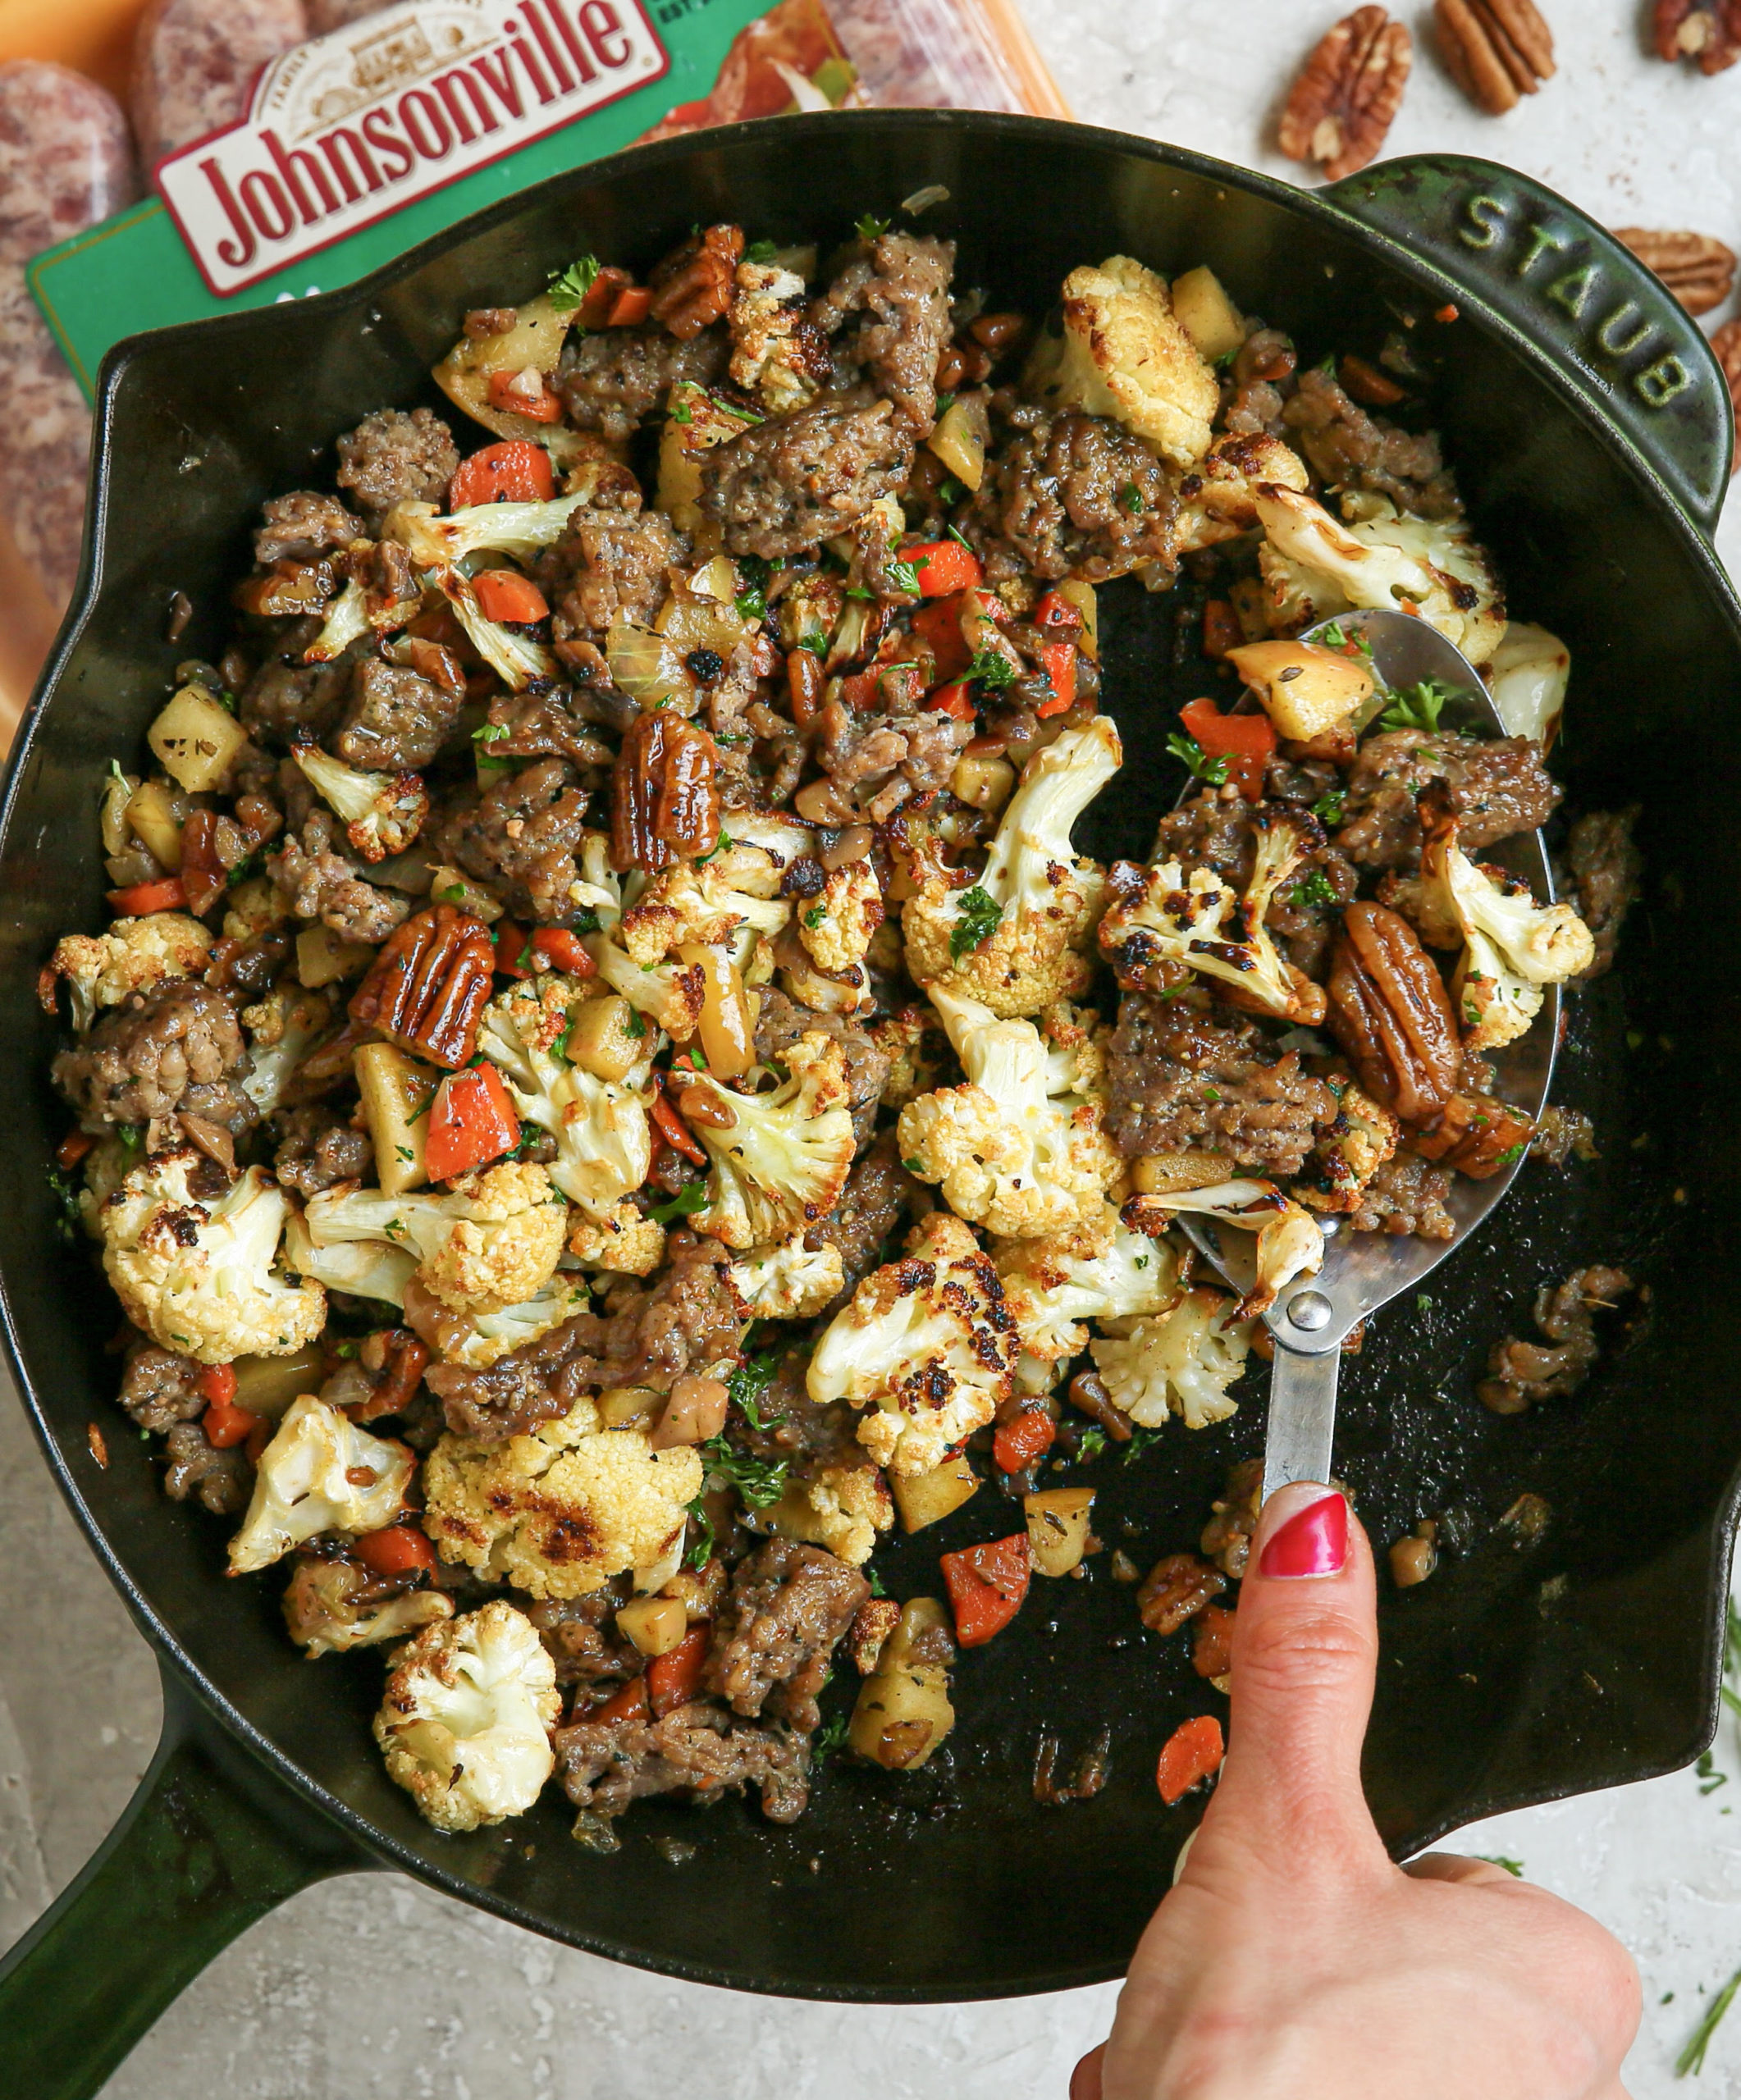 Grain-Free Cauliflower Stuffing with Apples and Sausage